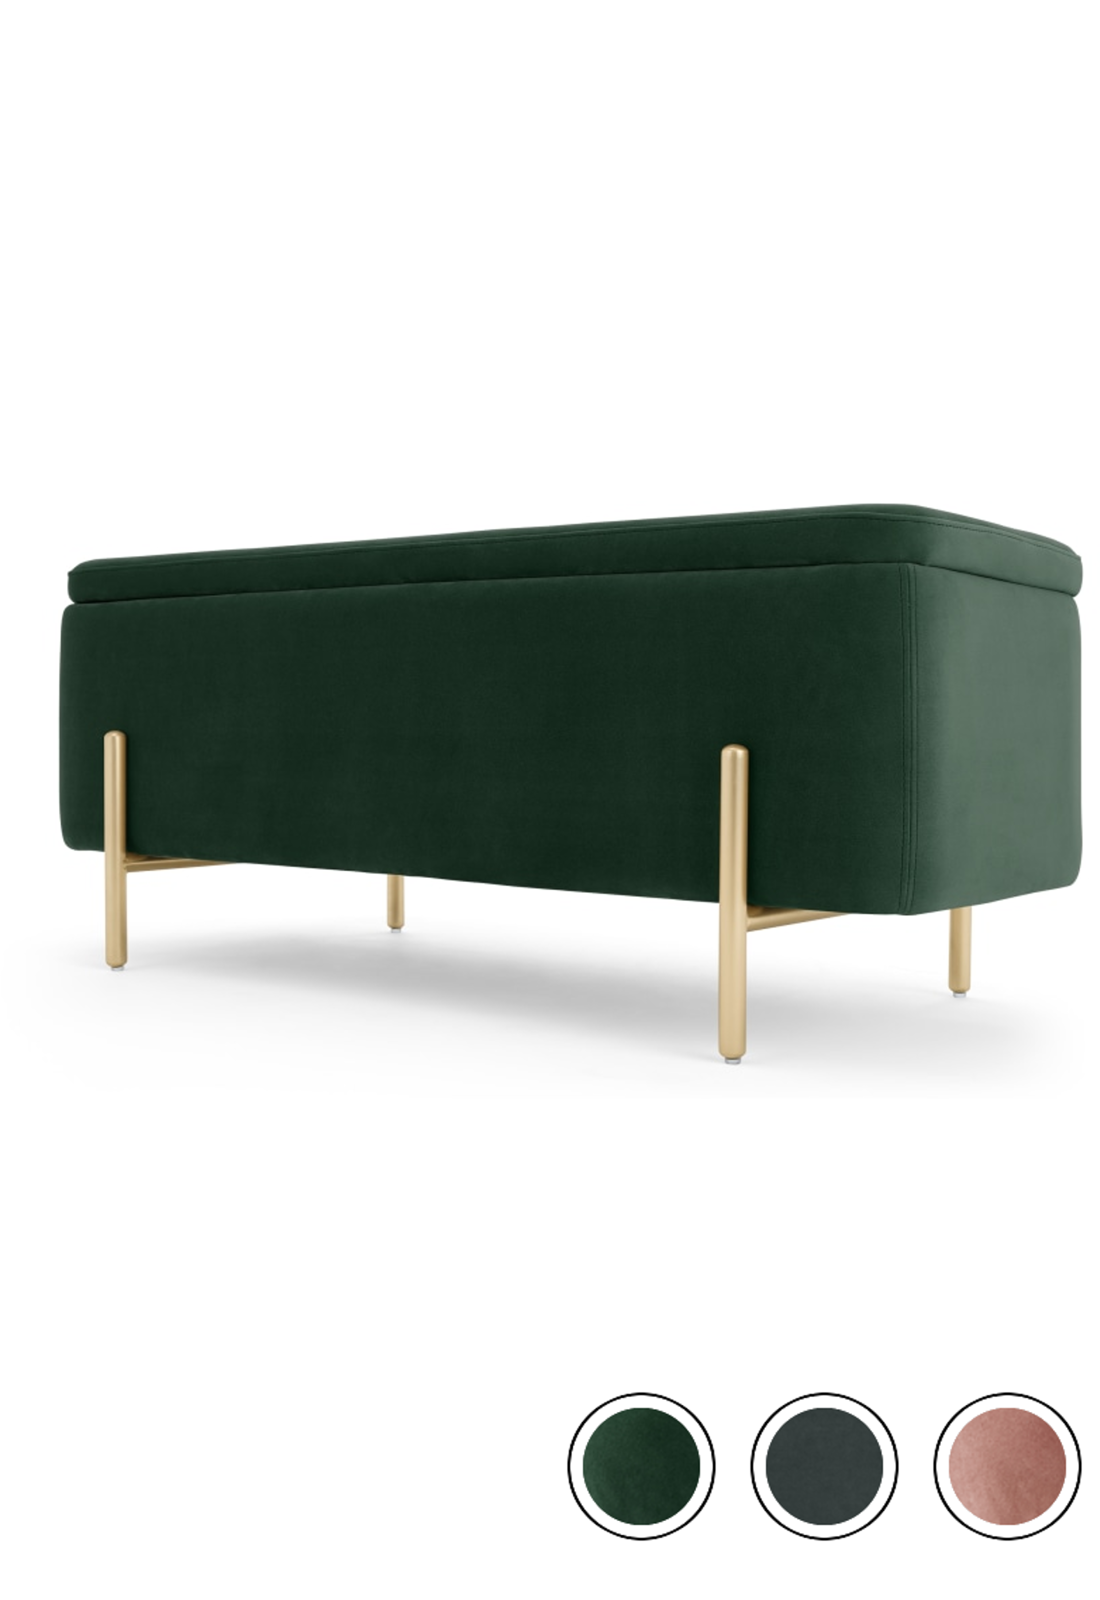 Asare Upholstered Storage Bench Pine Green And Brass With Images